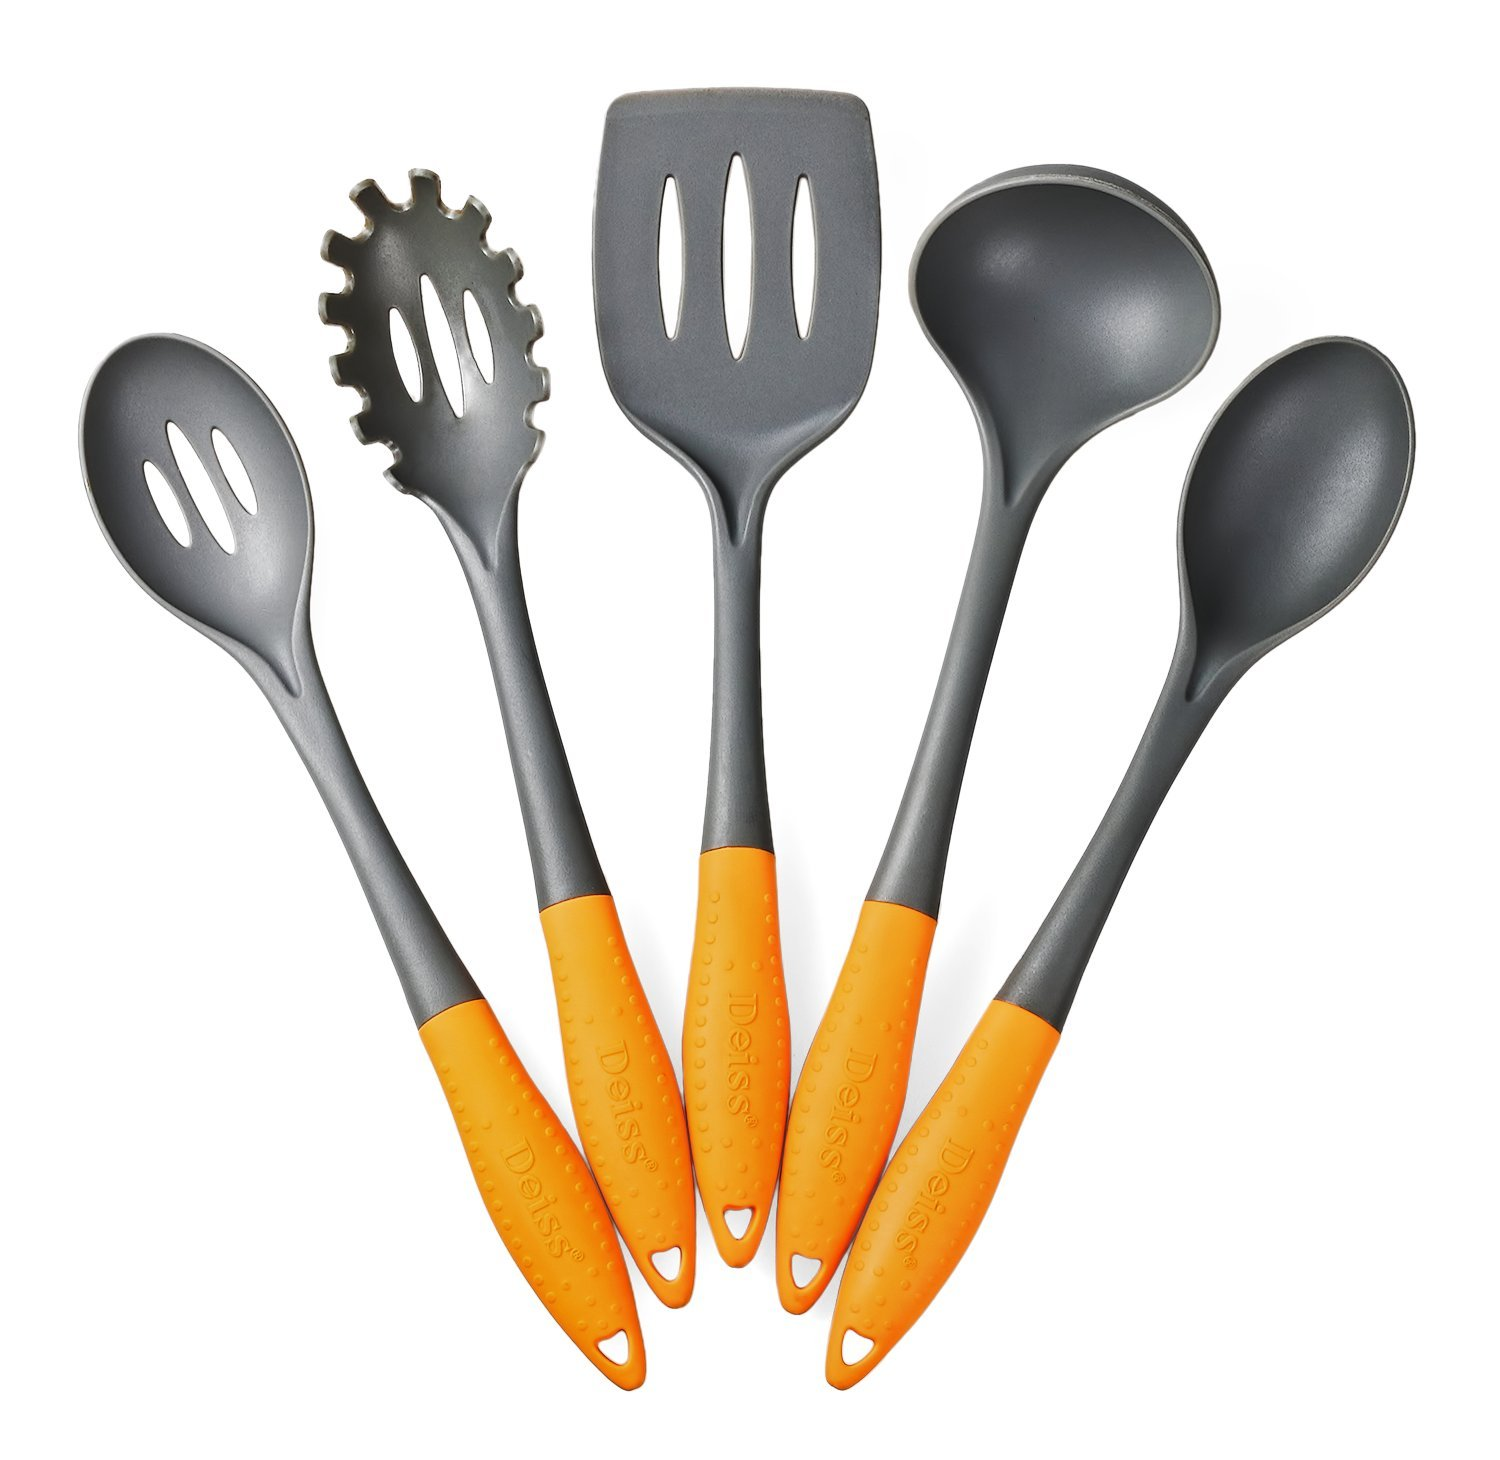 Deiss ART 5-piece Nylon Utensil Set — Soup Ladle, Slotted Turner, Spaghetti Server, Serving Spoon, Slotted Serving Spoon — Safe for Non-stick Cookware — Dishwasher Safe